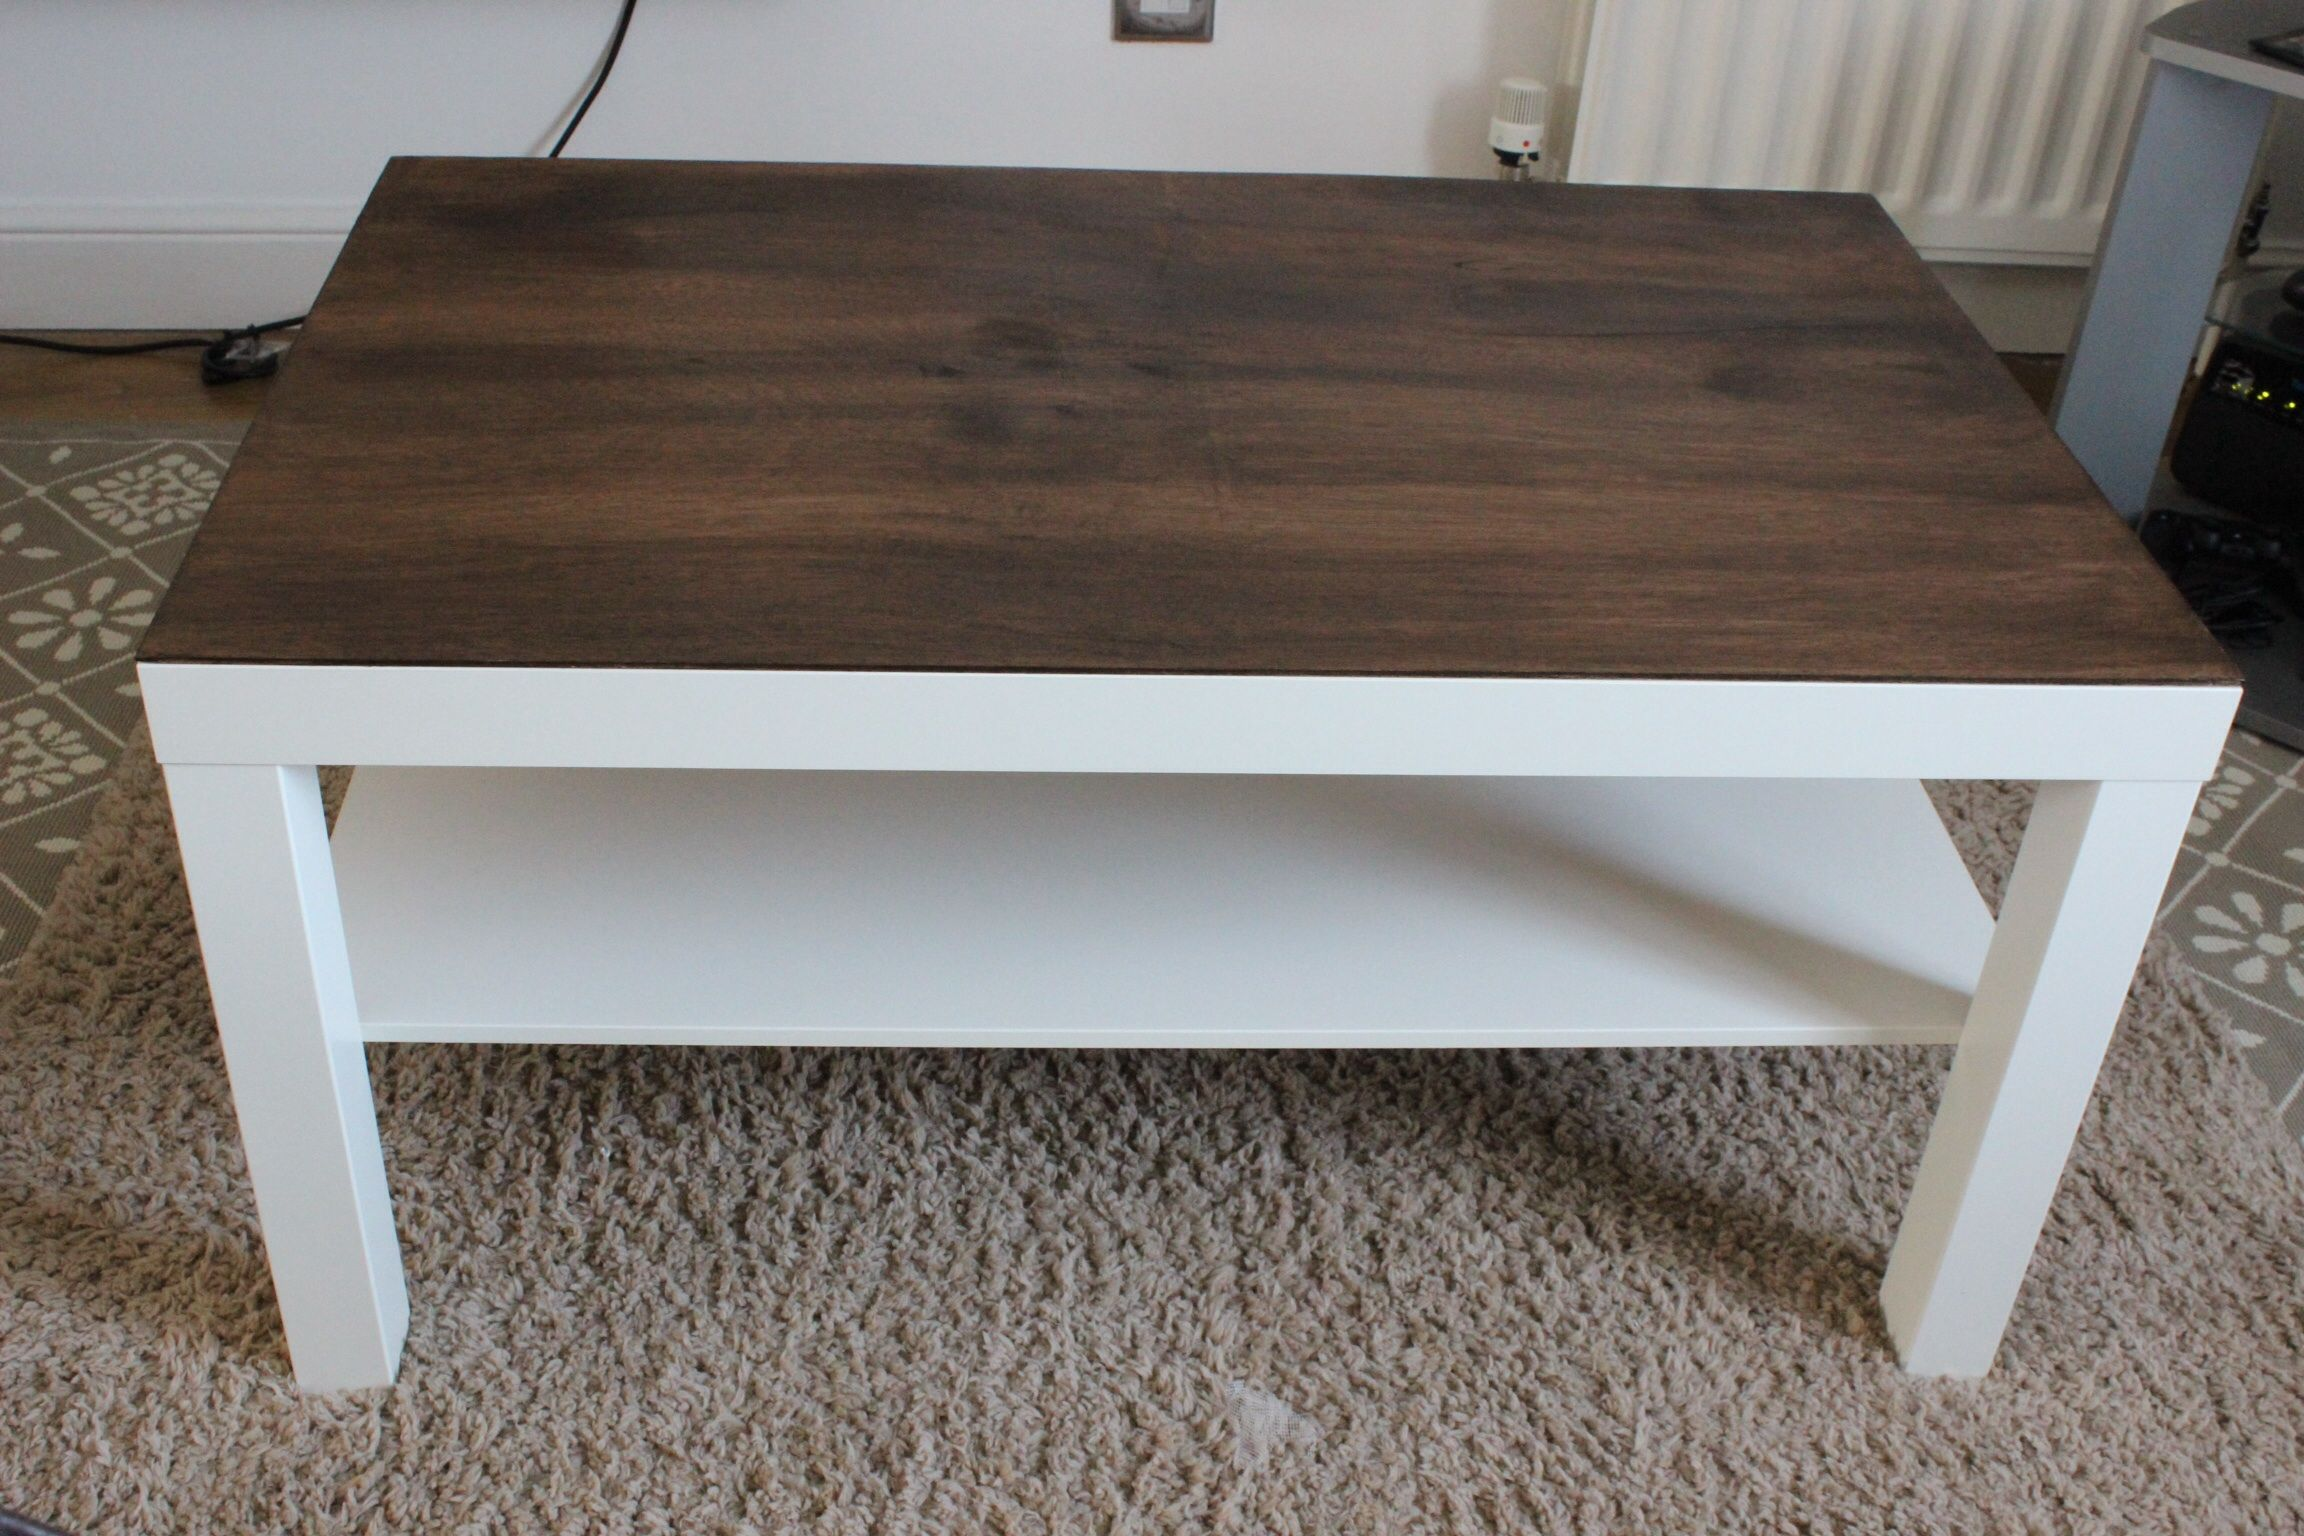 An Ikea Lack Coffee Table Hack A Stained Piece Of Plywood Makes Such Difference For More Diy Ideas Check Out My Blog